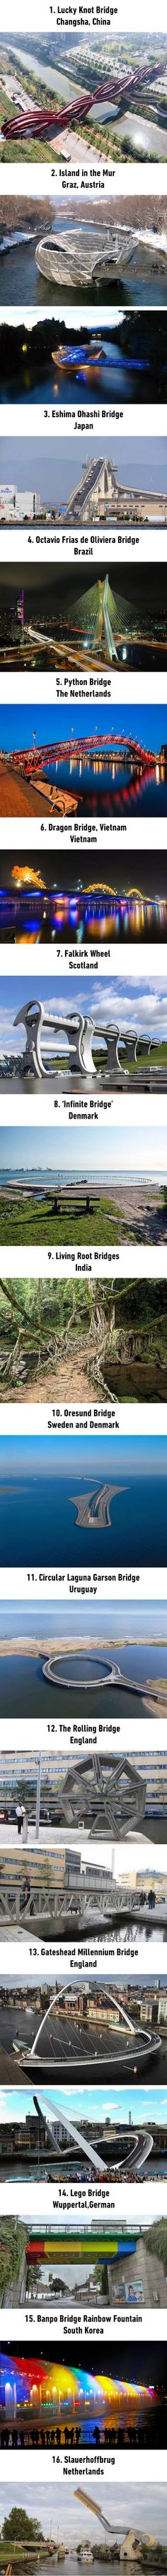 Special looking bridges around the world